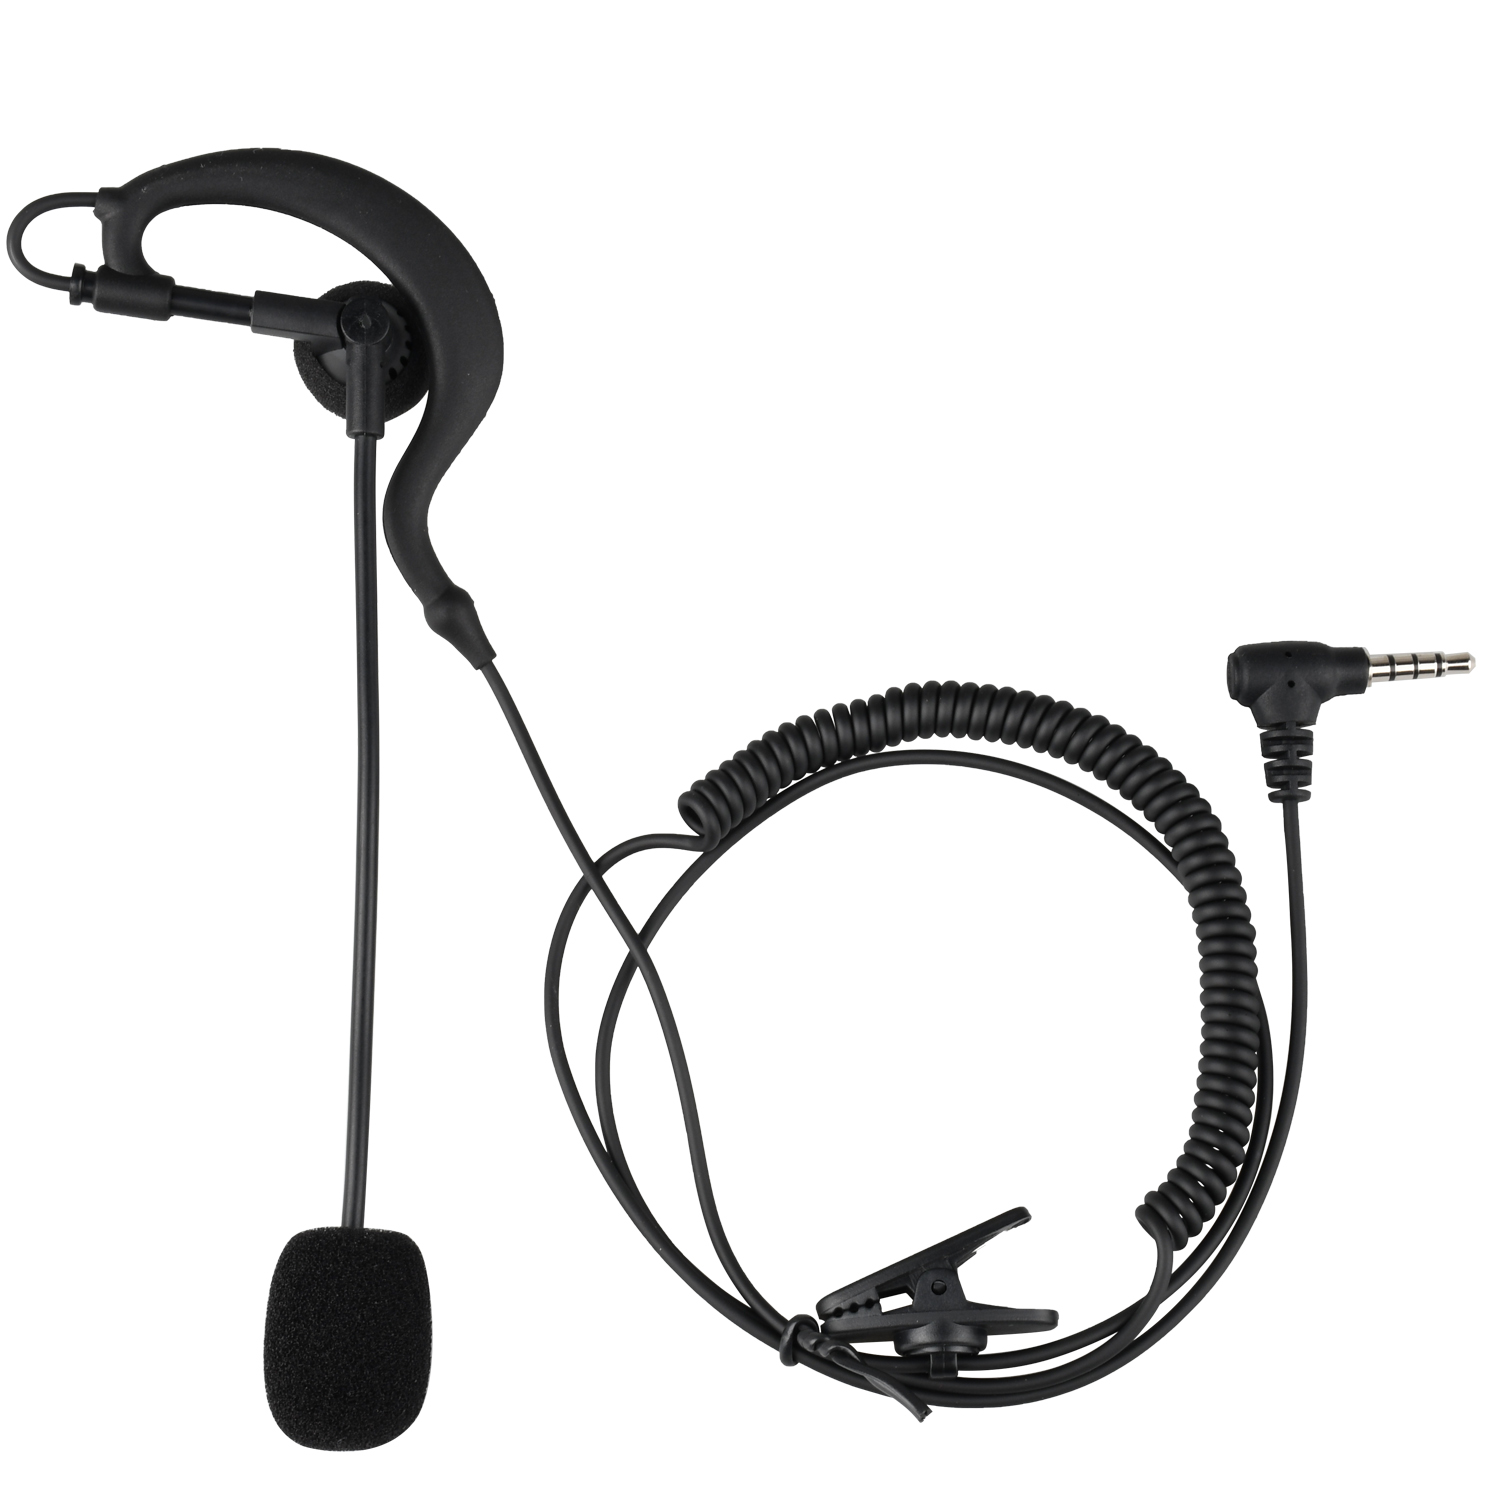 Fodsport V6 V4 Intercom Headset Football Referee Coach Judger Arbitration Referee Bicycle Conference  Earpiece Earphone